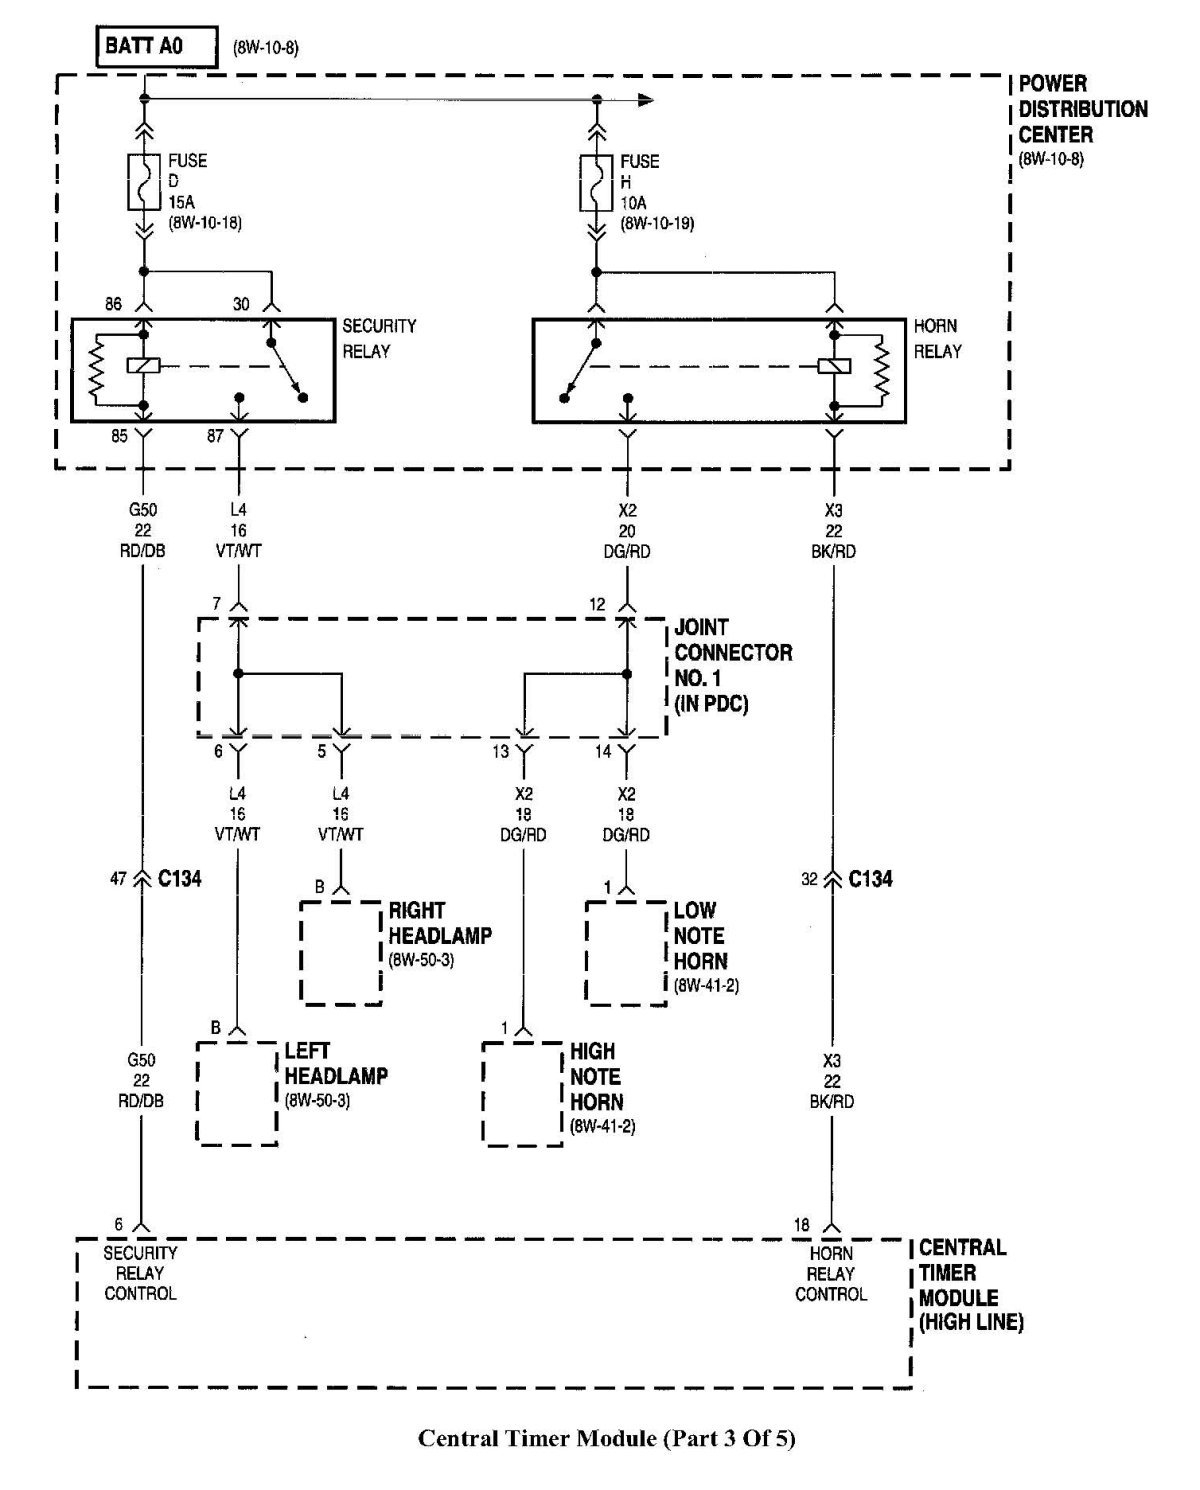 2005 Dodge Ram Wiring Harness - Wiring Diagram Data - 2005 Dodge Ram 1500 Trailer Wiring Diagram